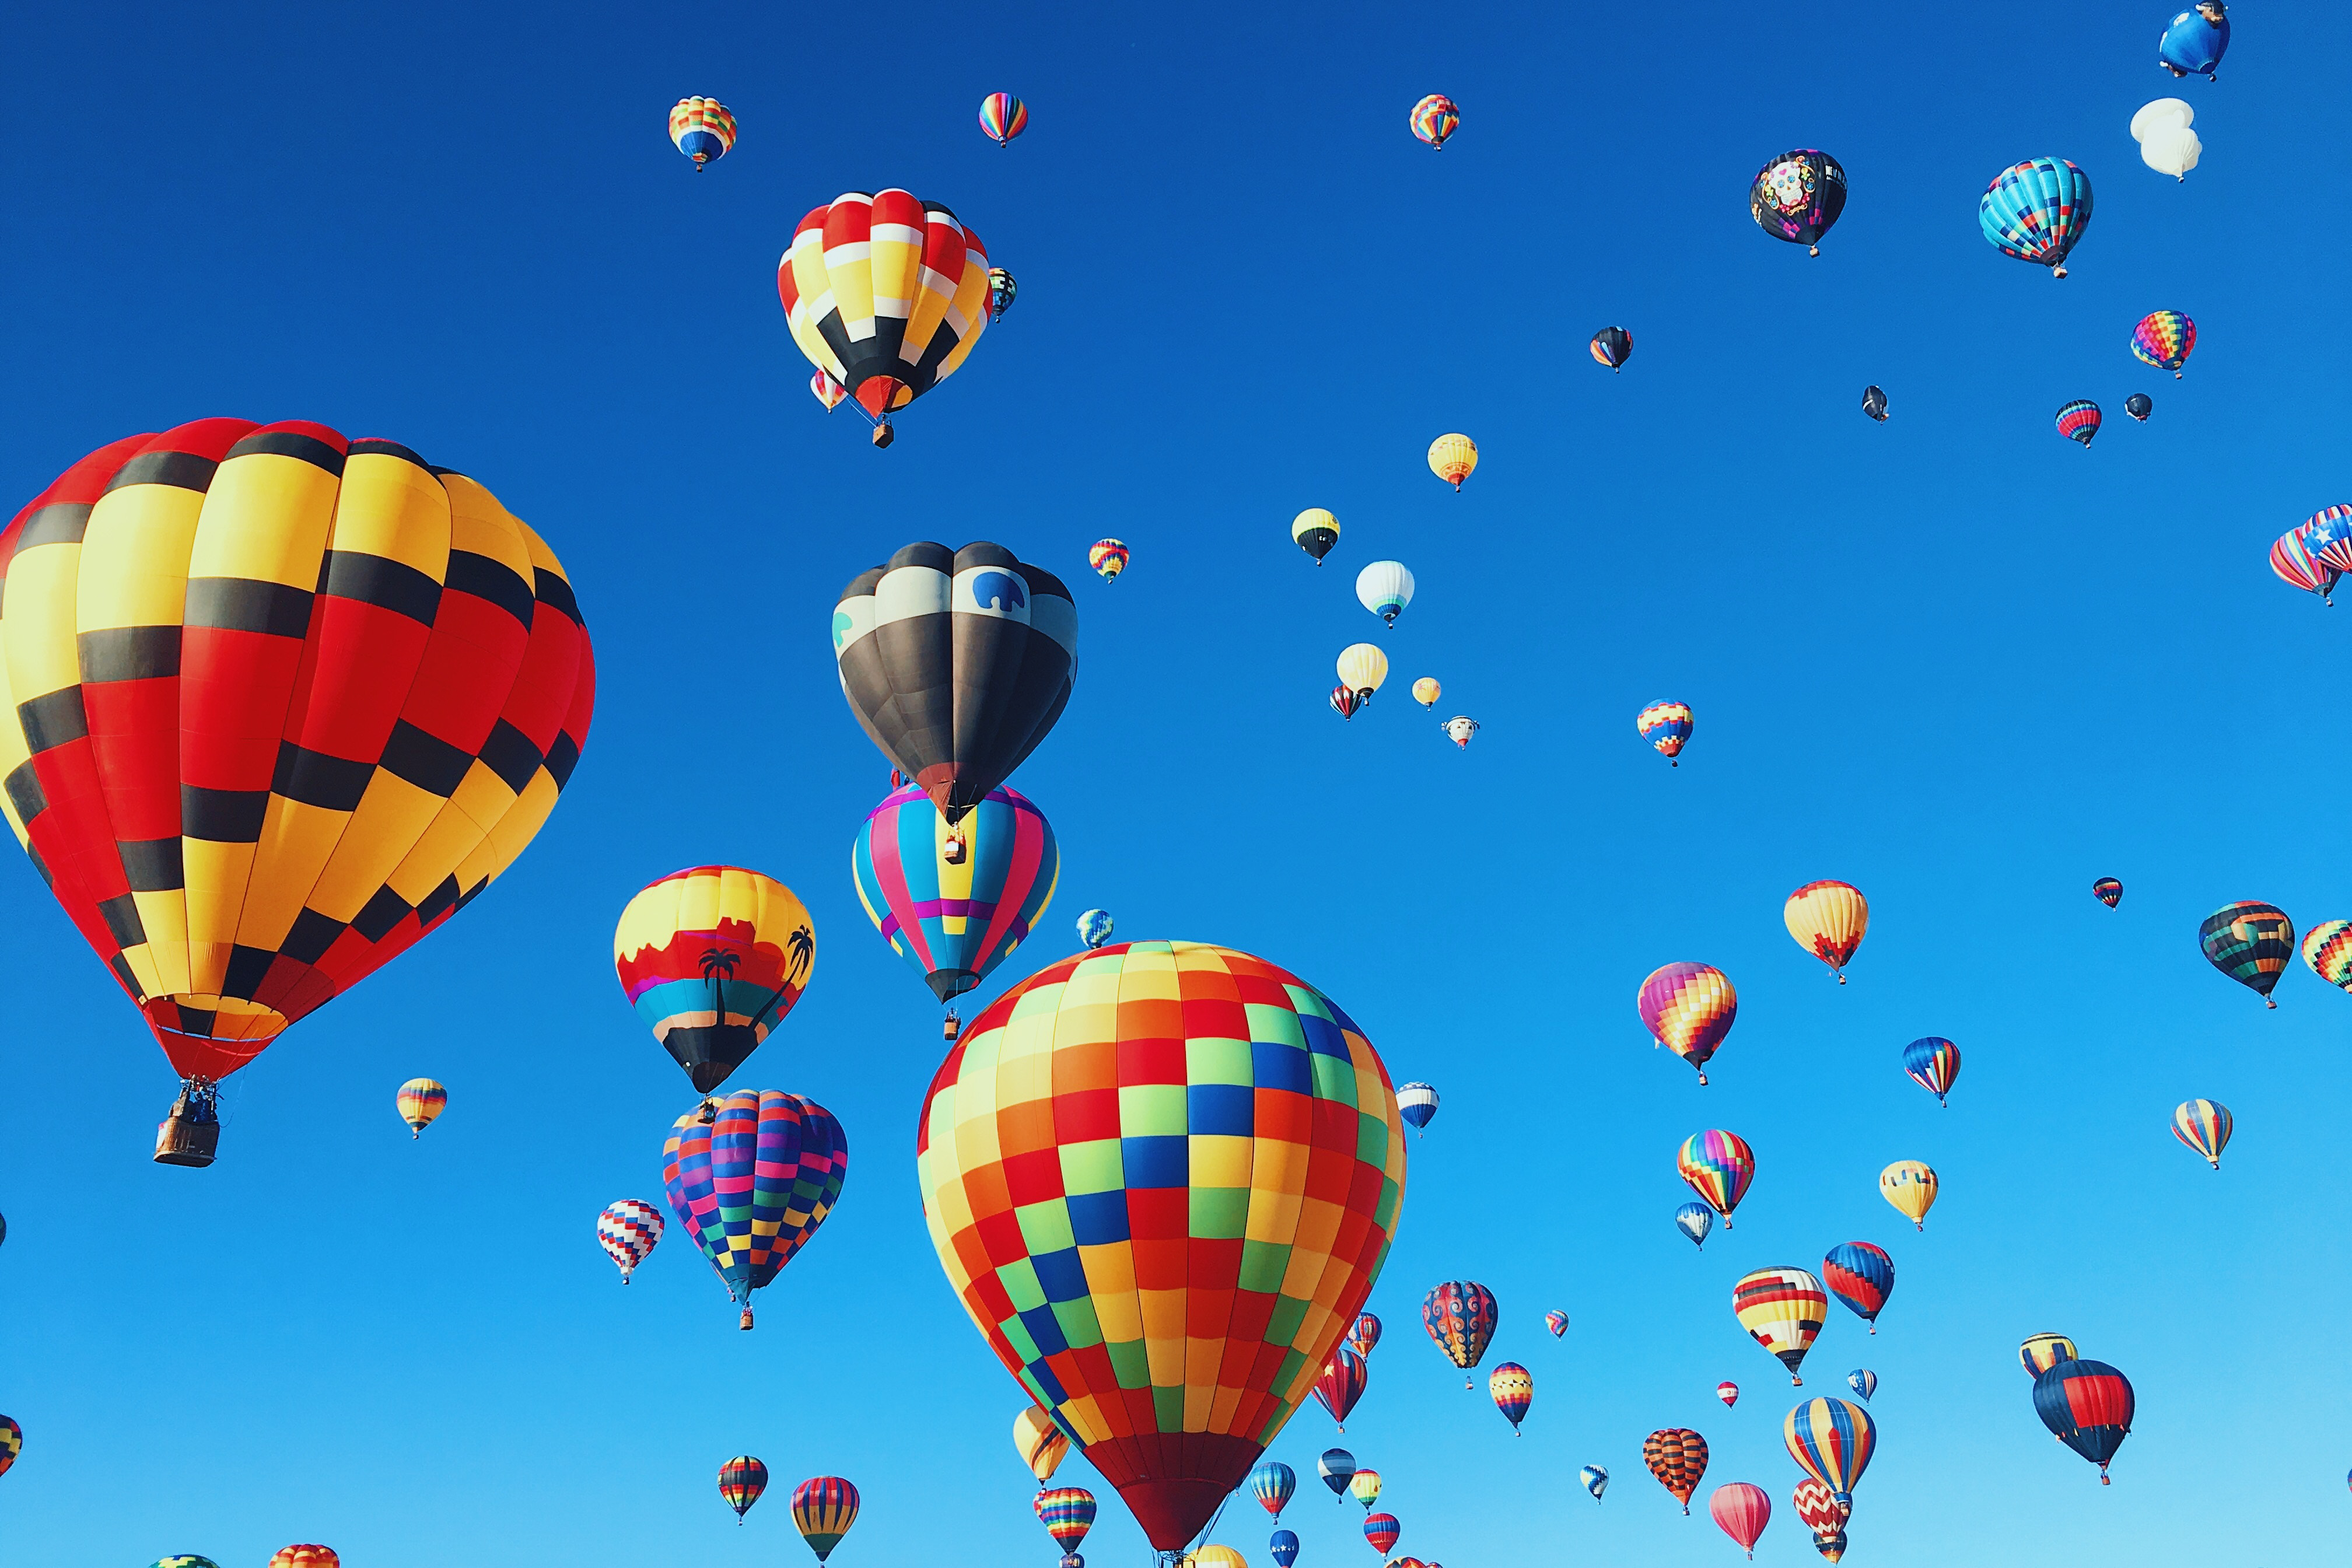 Hot Air Balloons blue skies sky hot air balloon festival 15 Romantic Travel Gift Ideas for Valentine's Day